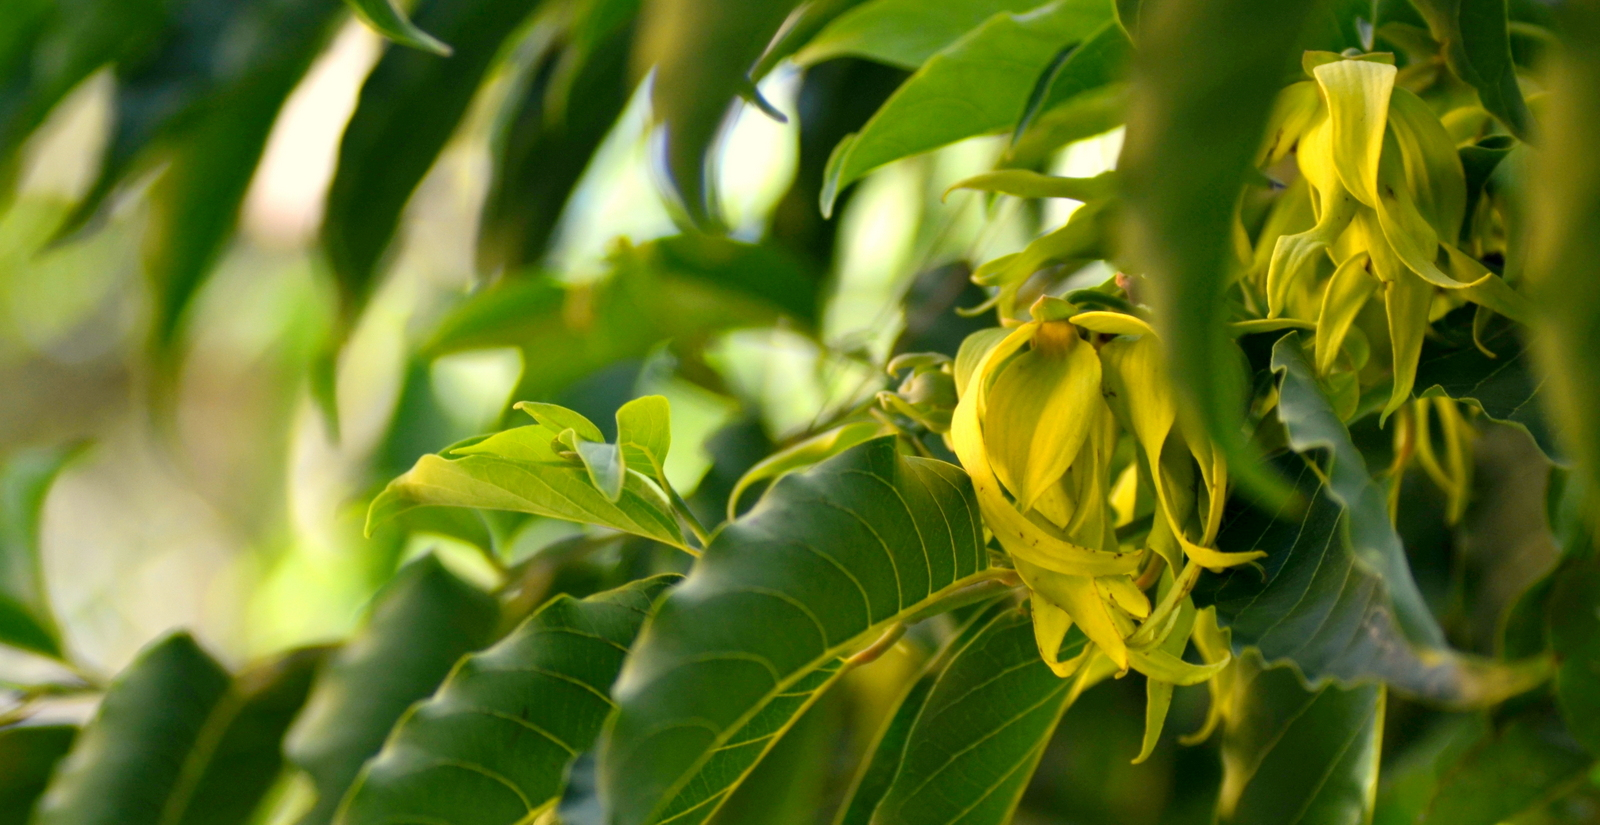 Dictionnaire huiles essentielles dictionnaire huiles for Plante ylang ylang